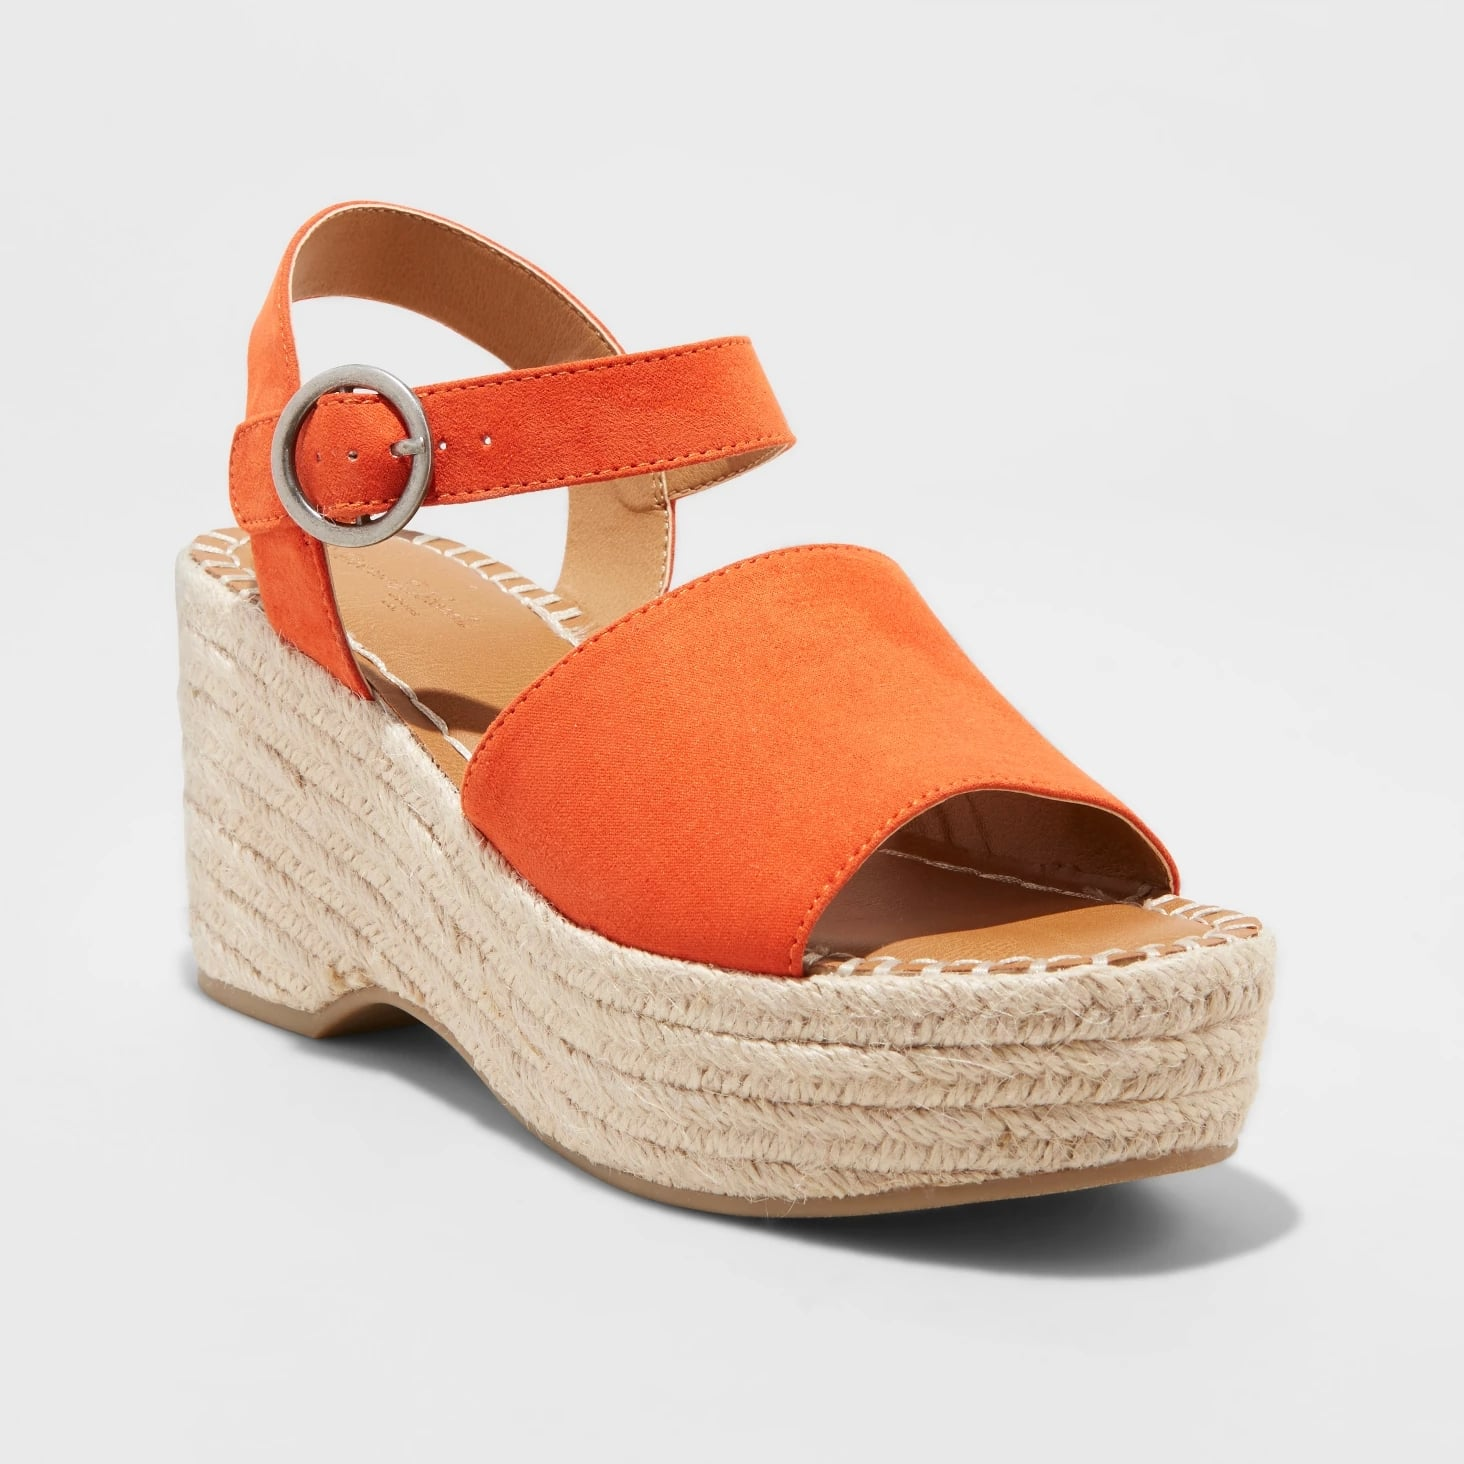 7809aa04aa5 Morgan Two-Piece Espadrille Wedges   Toes, It's Time to Make Your ...